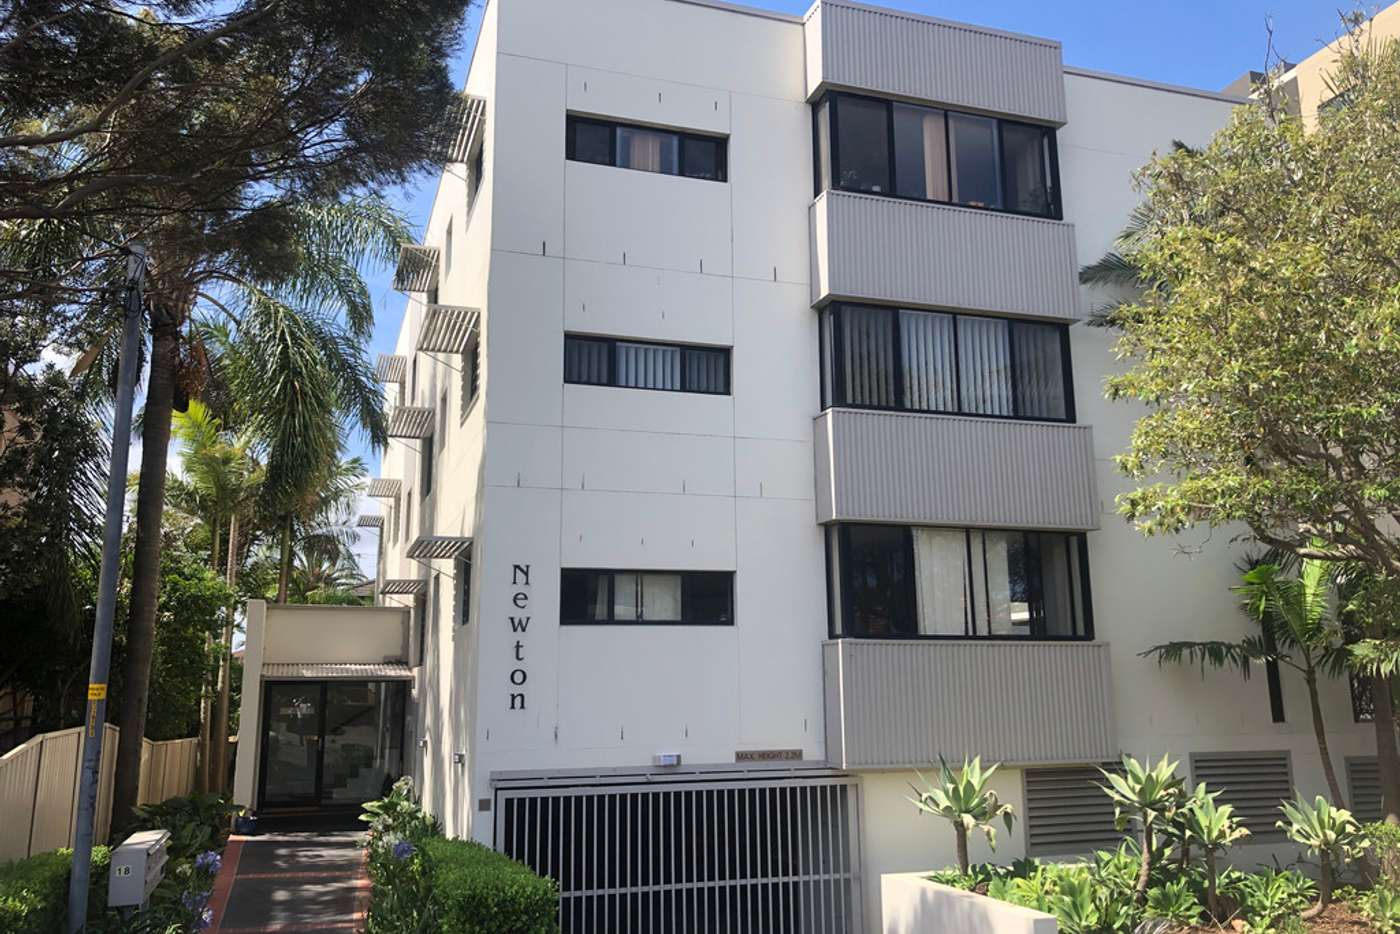 Main view of Homely unit listing, 6/18 HERCULES STREET, Wollongong NSW 2500